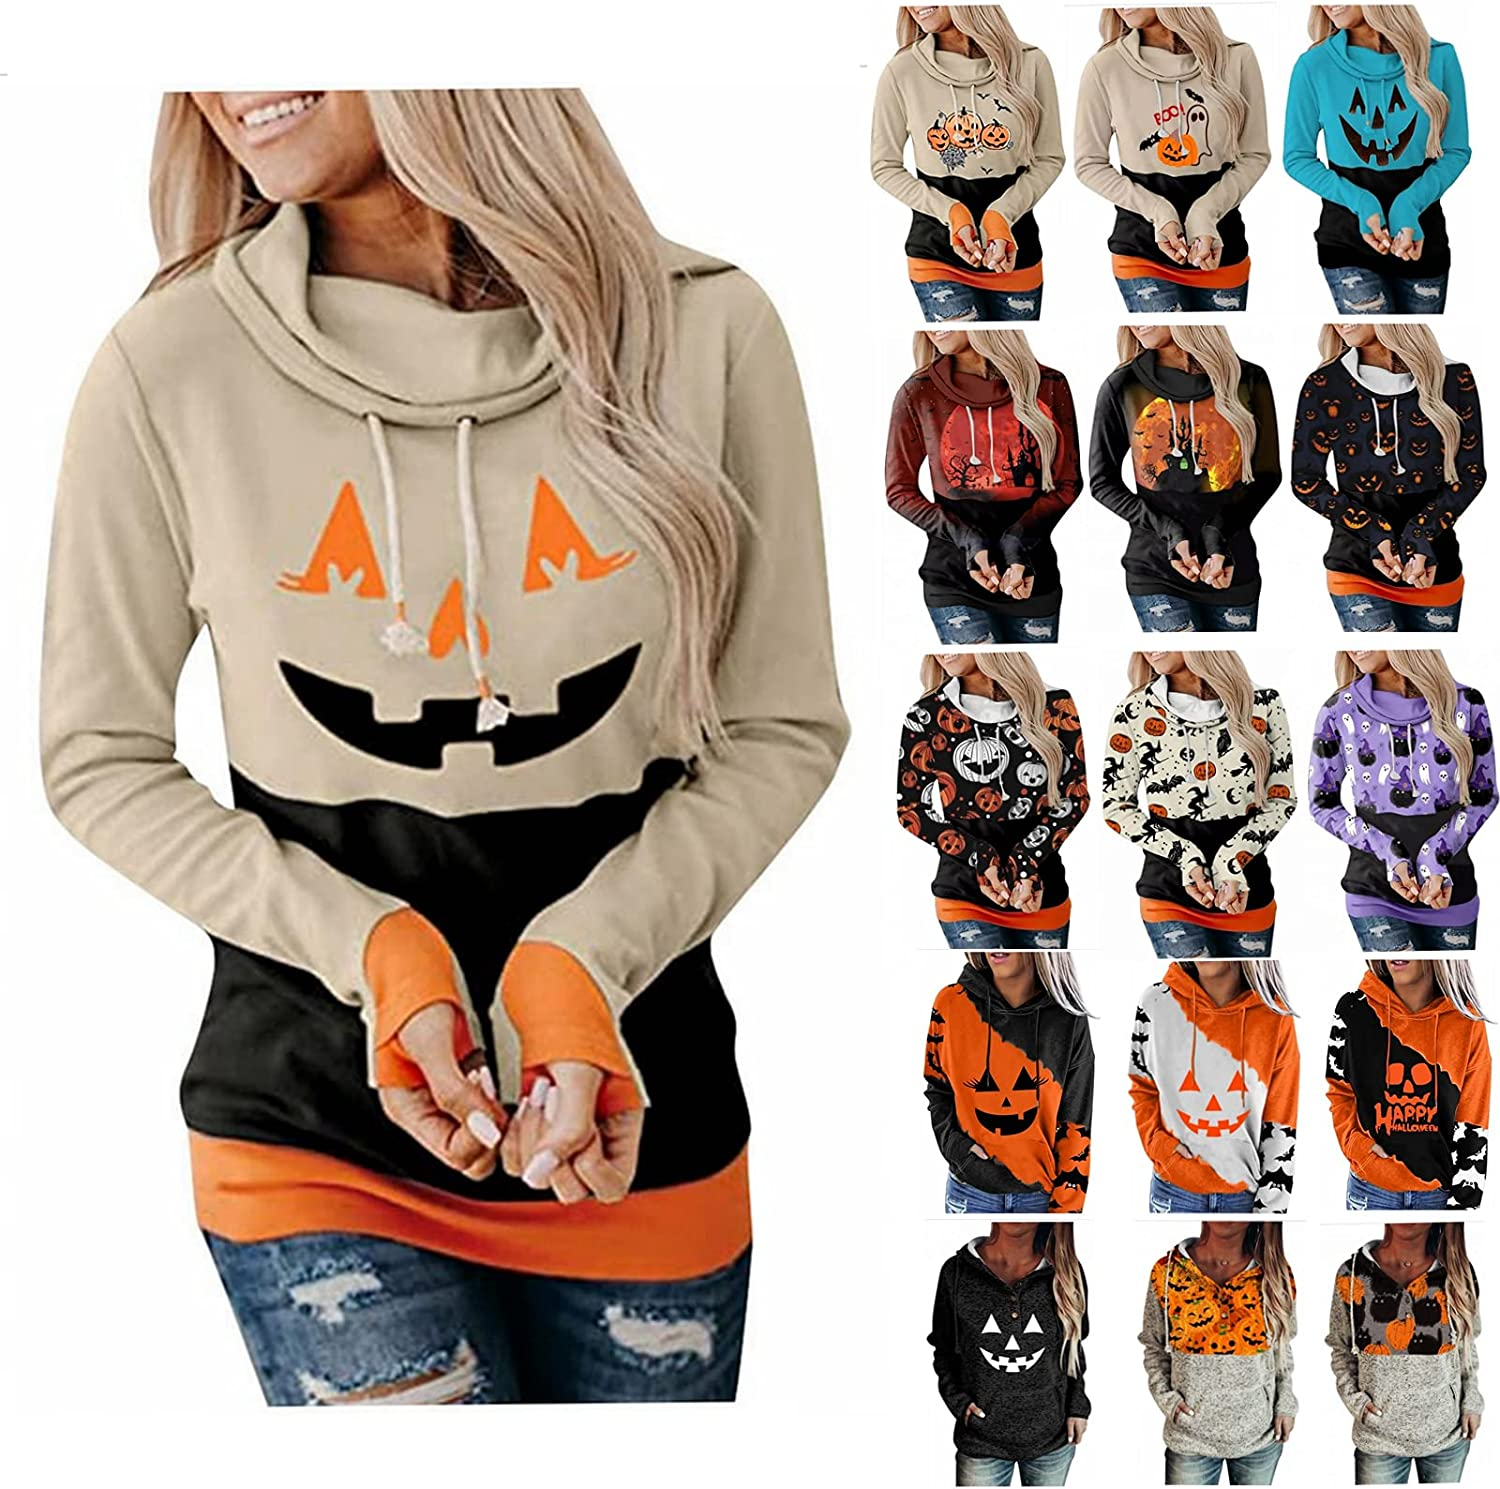 Fudule Halloween Hoodies for Women, Pumpkin Face Graphic Shirts Long Sleeve Sweatshirts Casual Loose Fit Pullover Hooded